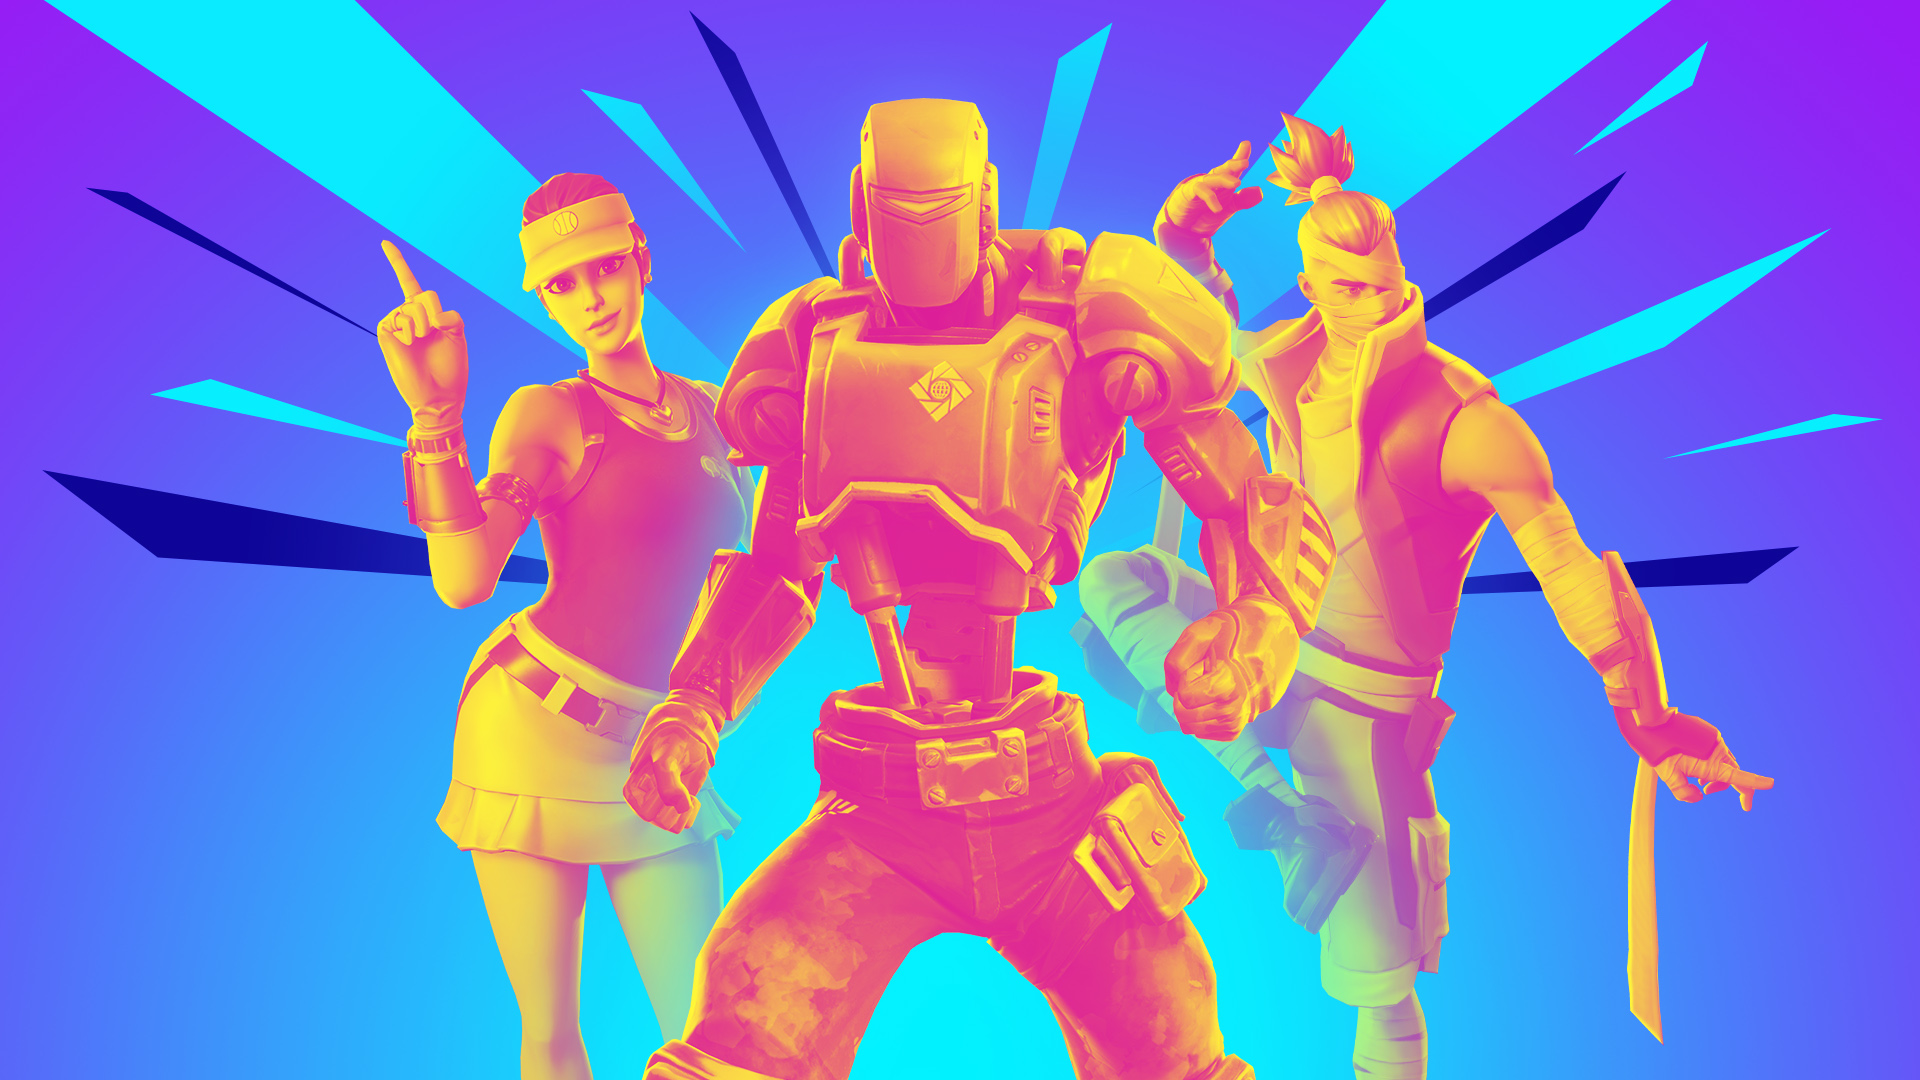 Fortnite Pro Banned For 14 Days